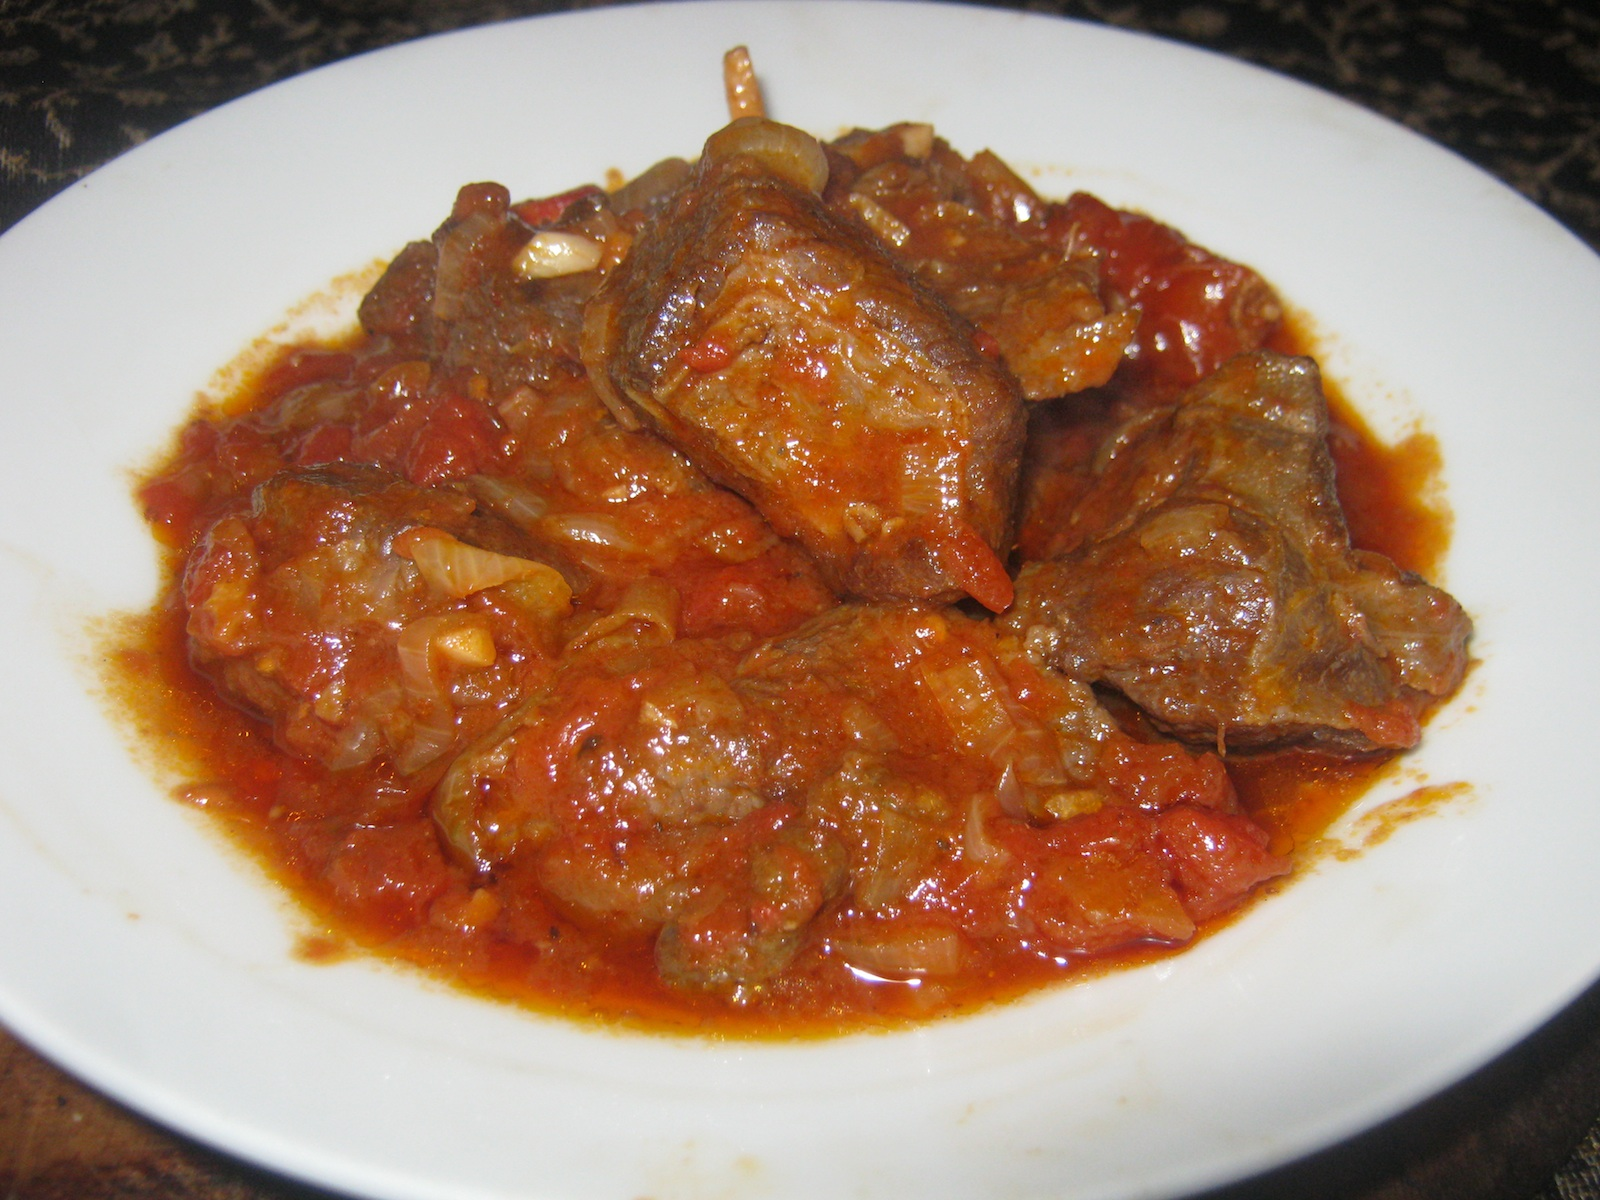 Blessbok Stew spiced with Carolina Reaper chili served on a white plate